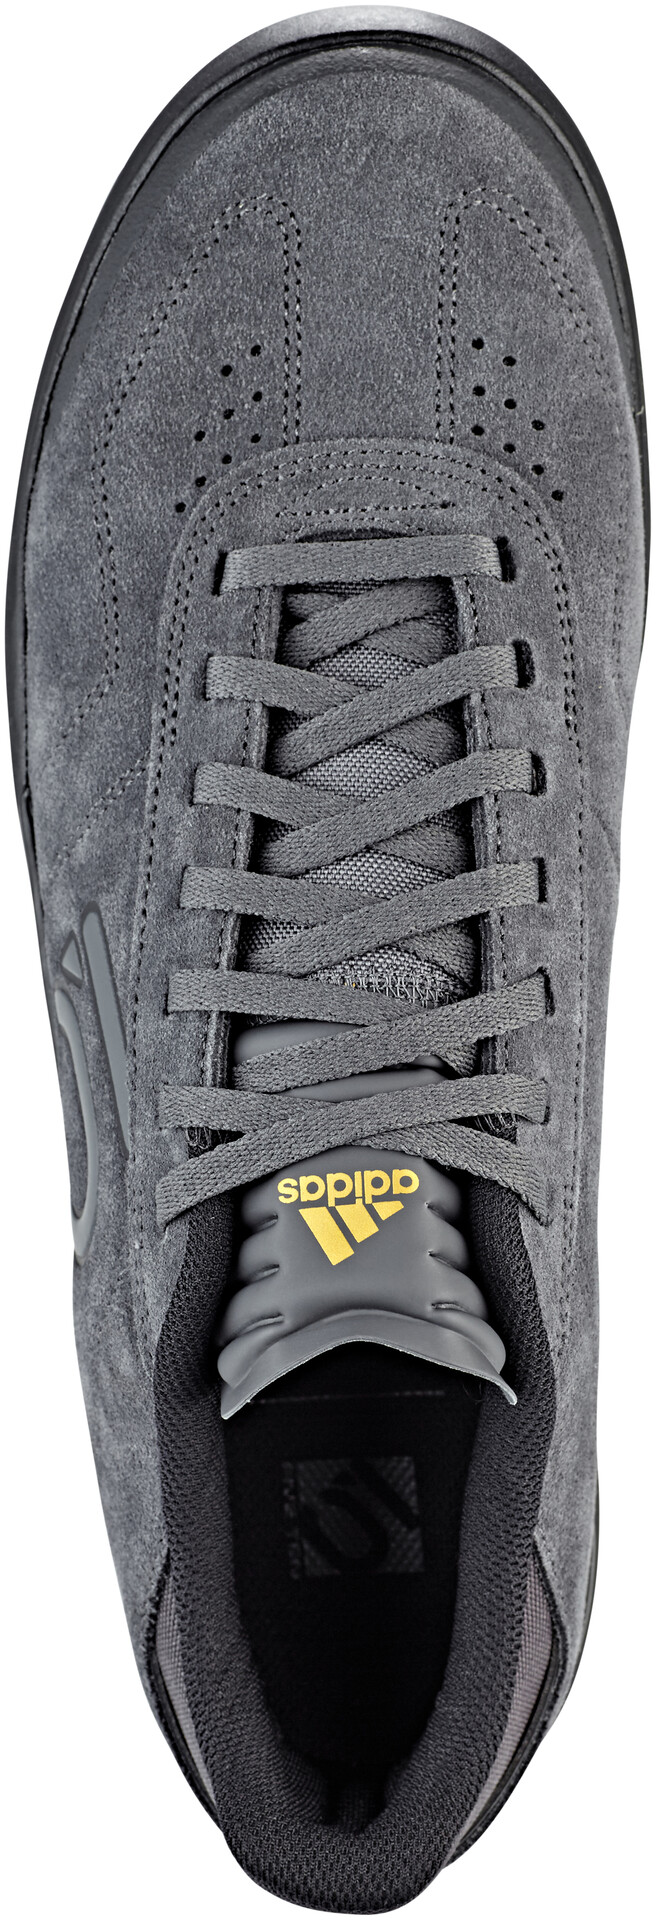 adidas Five Ten Sleuth DLX Shoes Herr gresixcore blackmagold